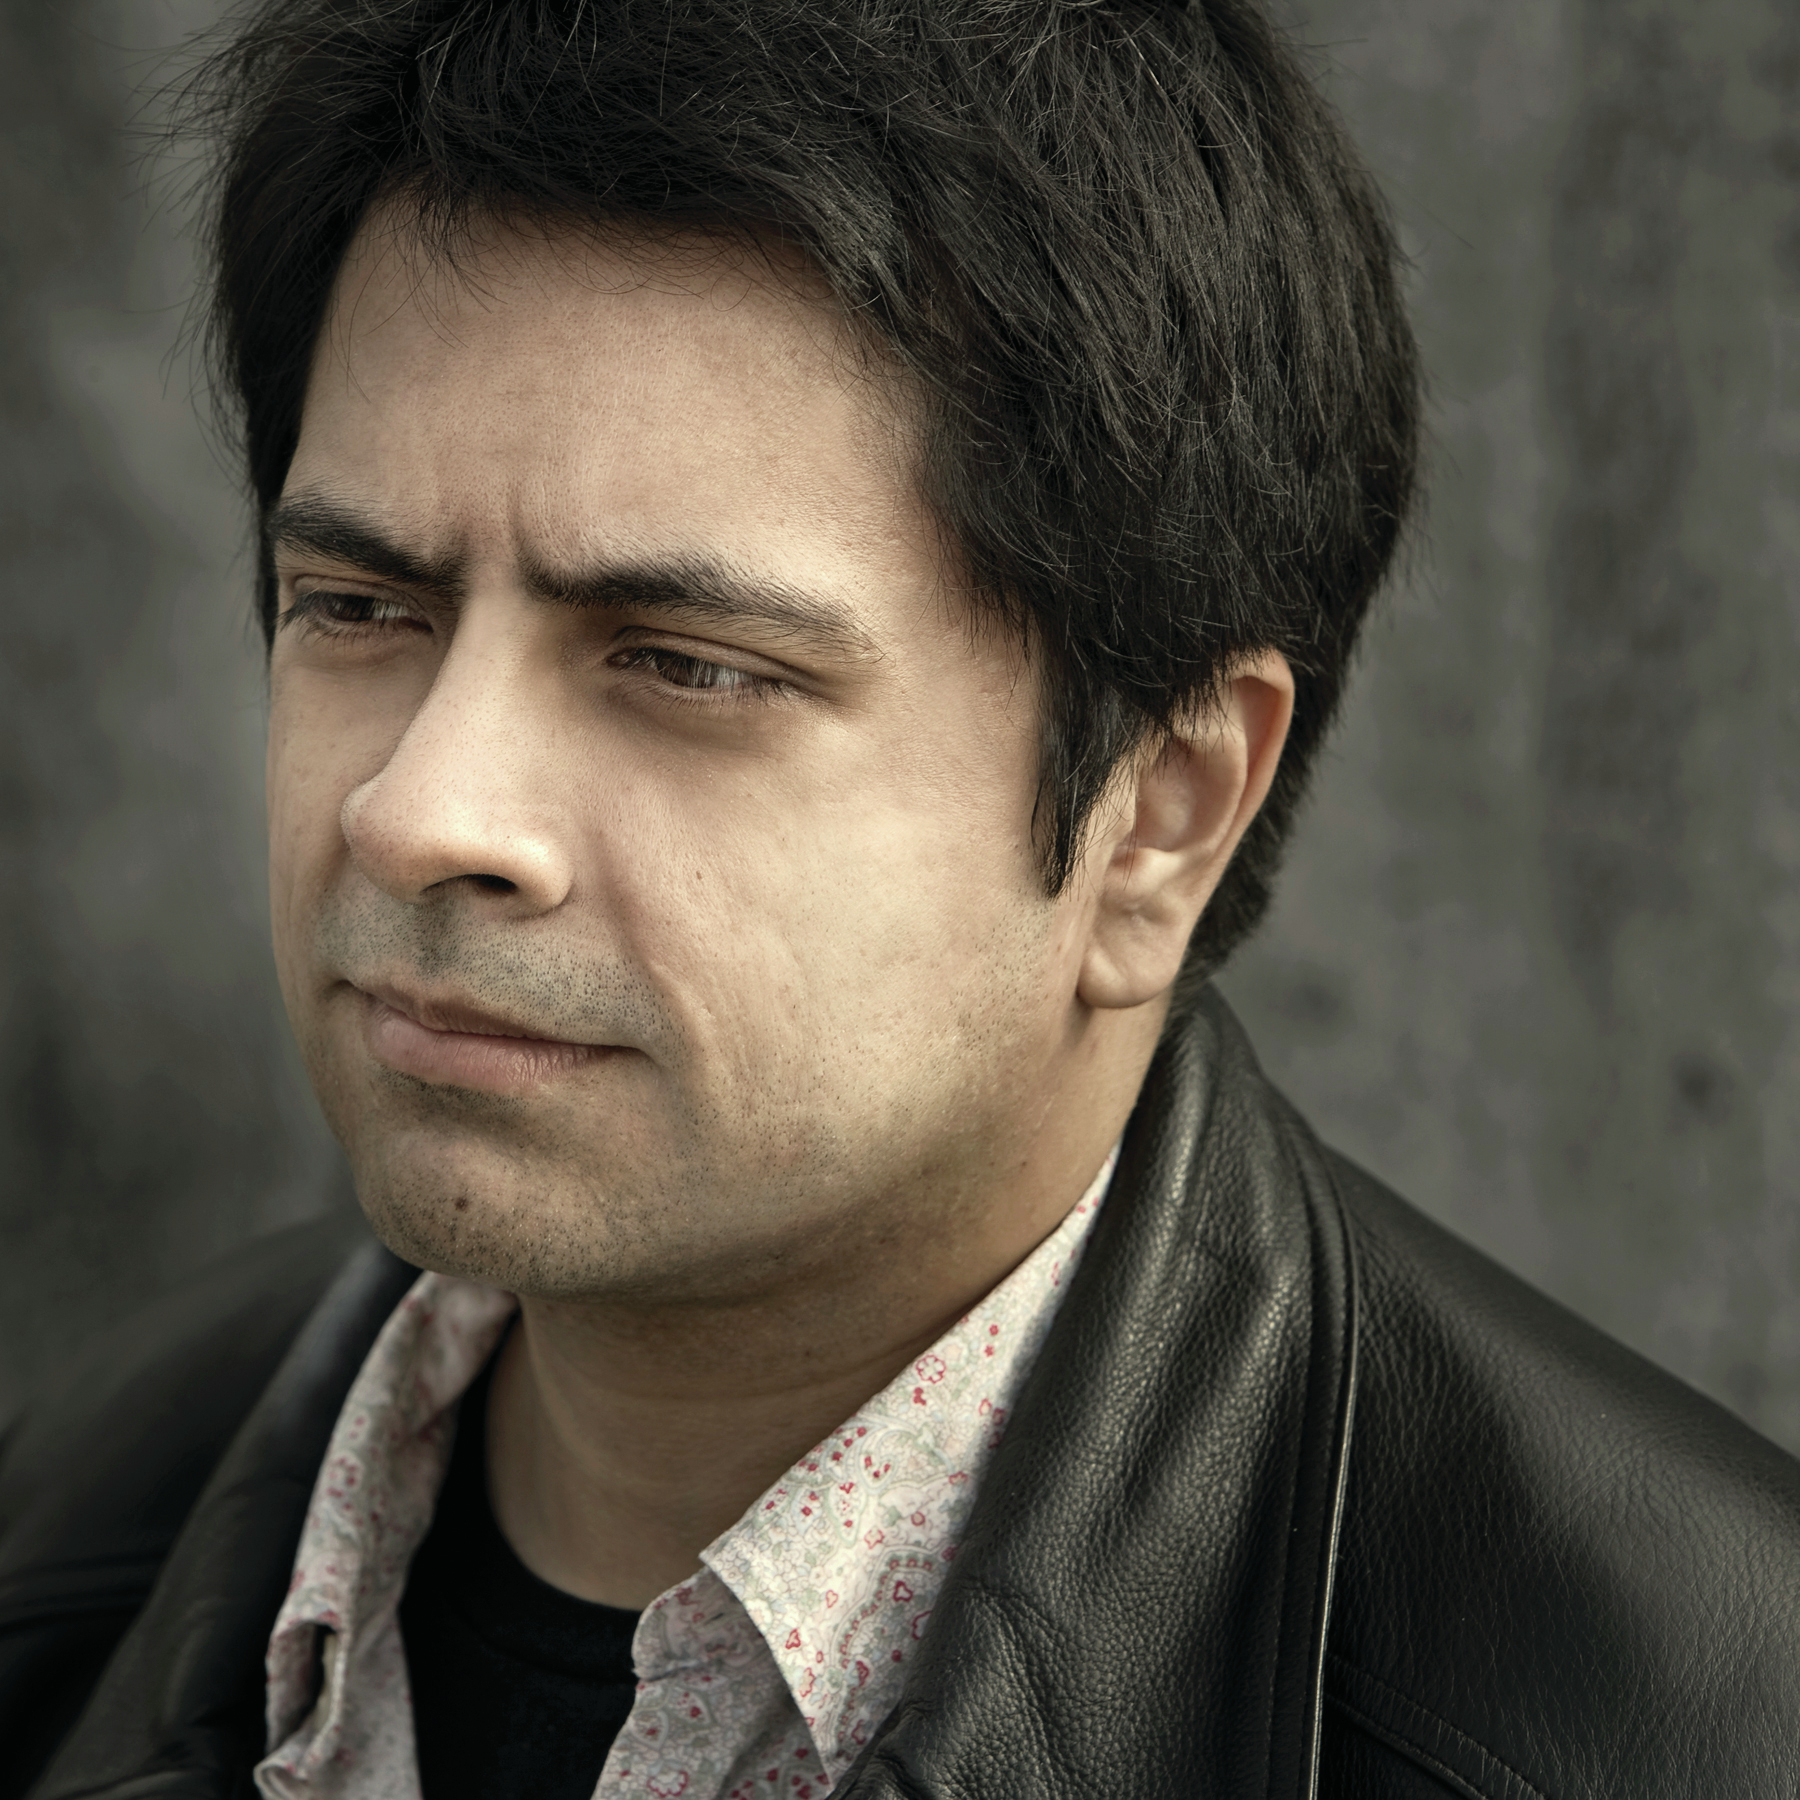 Brando Skyhorse's debut novel, The Madonnas of Echo Park, received the 2011 PEN/Hemingway Award and the Sue Kaufman Award for First Fiction from the American Academy of Arts and Letters.